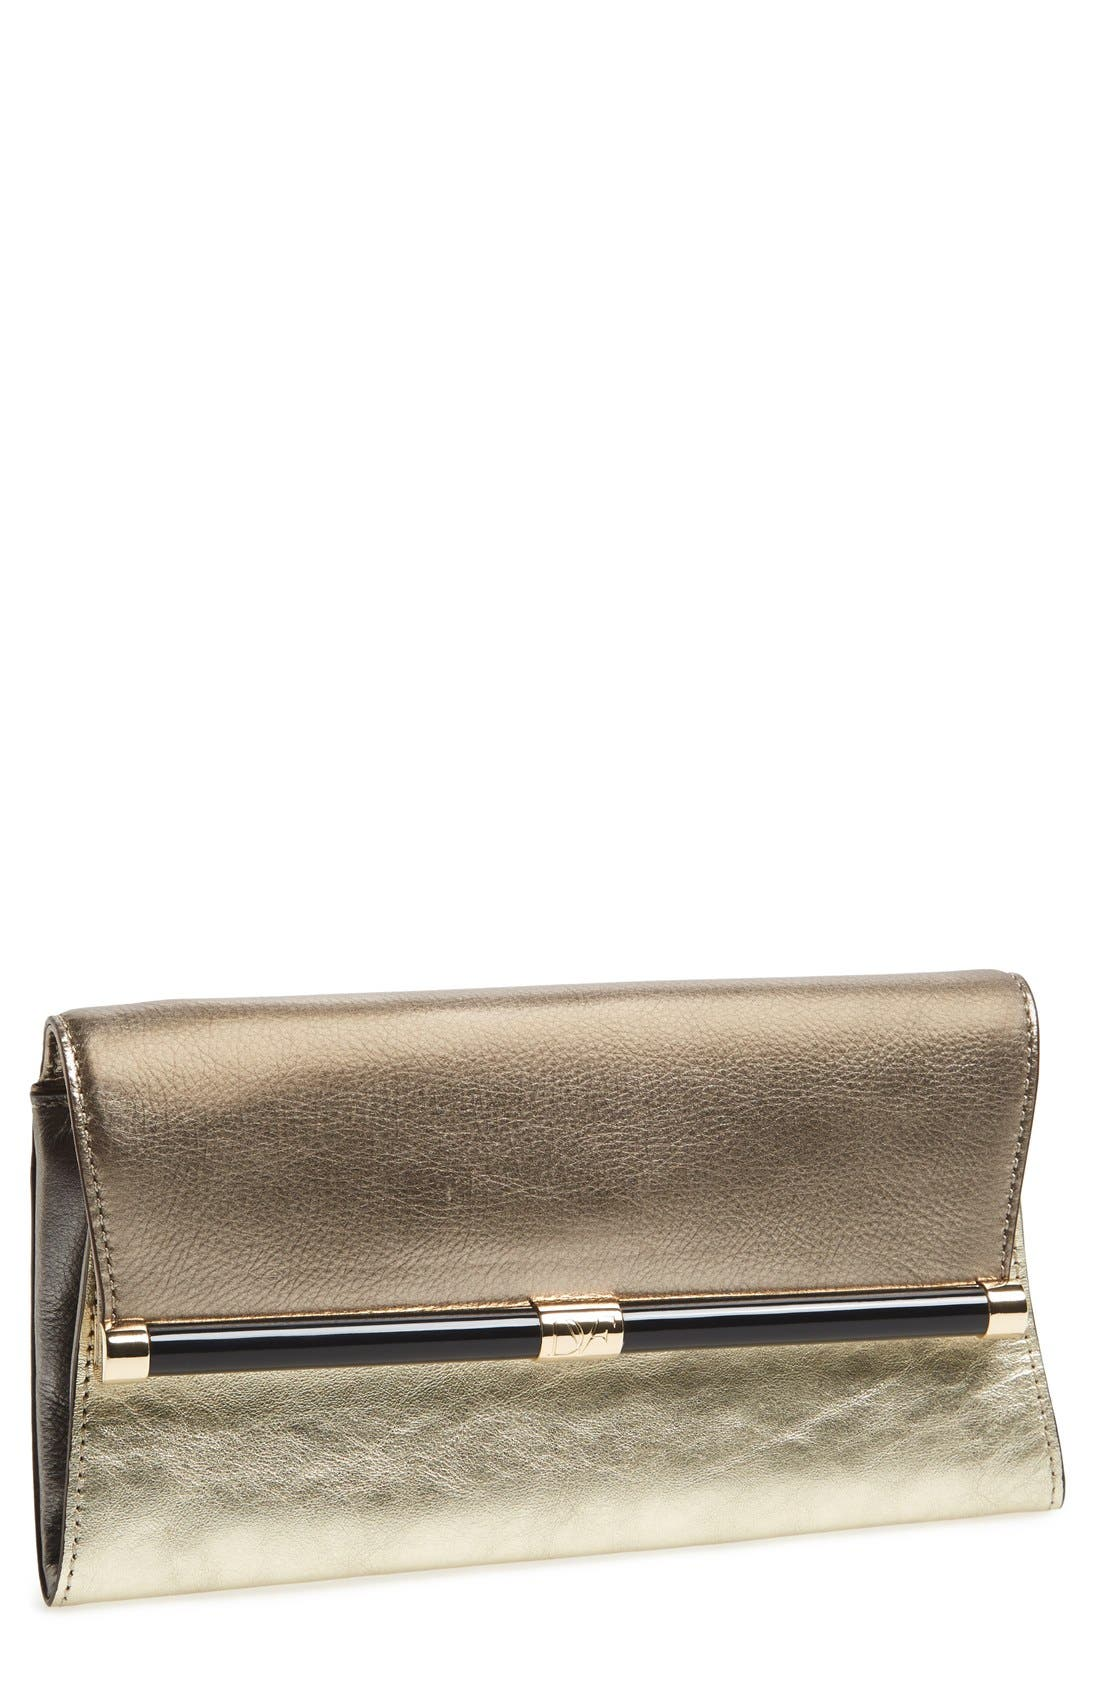 '440 - Mixed Metallic' Envelope Clutch,                             Main thumbnail 1, color,                             Tinsel/ Light Gold/ Pewter